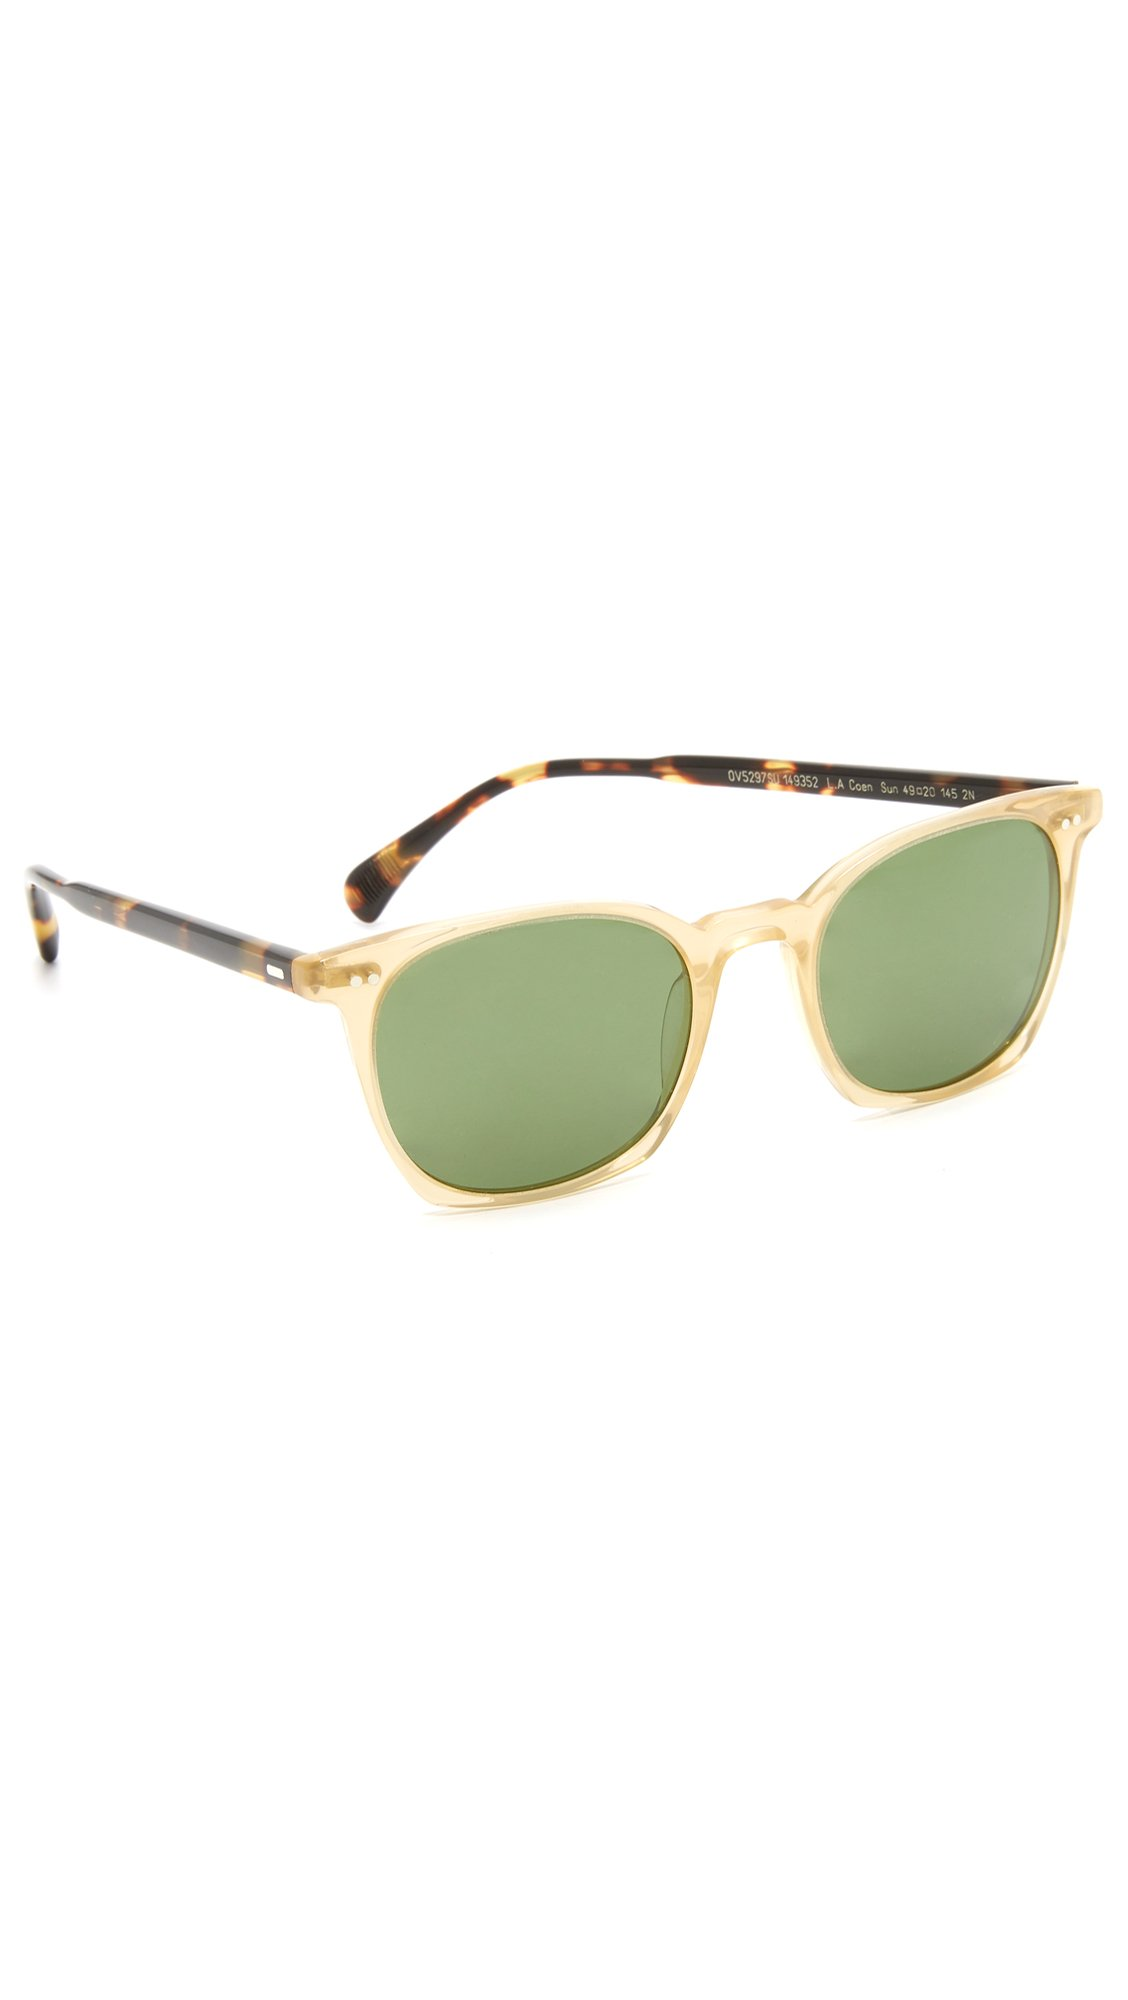 Oliver Peoples Eyewear Men's LA Coen Sunglasses, SLB/VDTB/Green, One Size